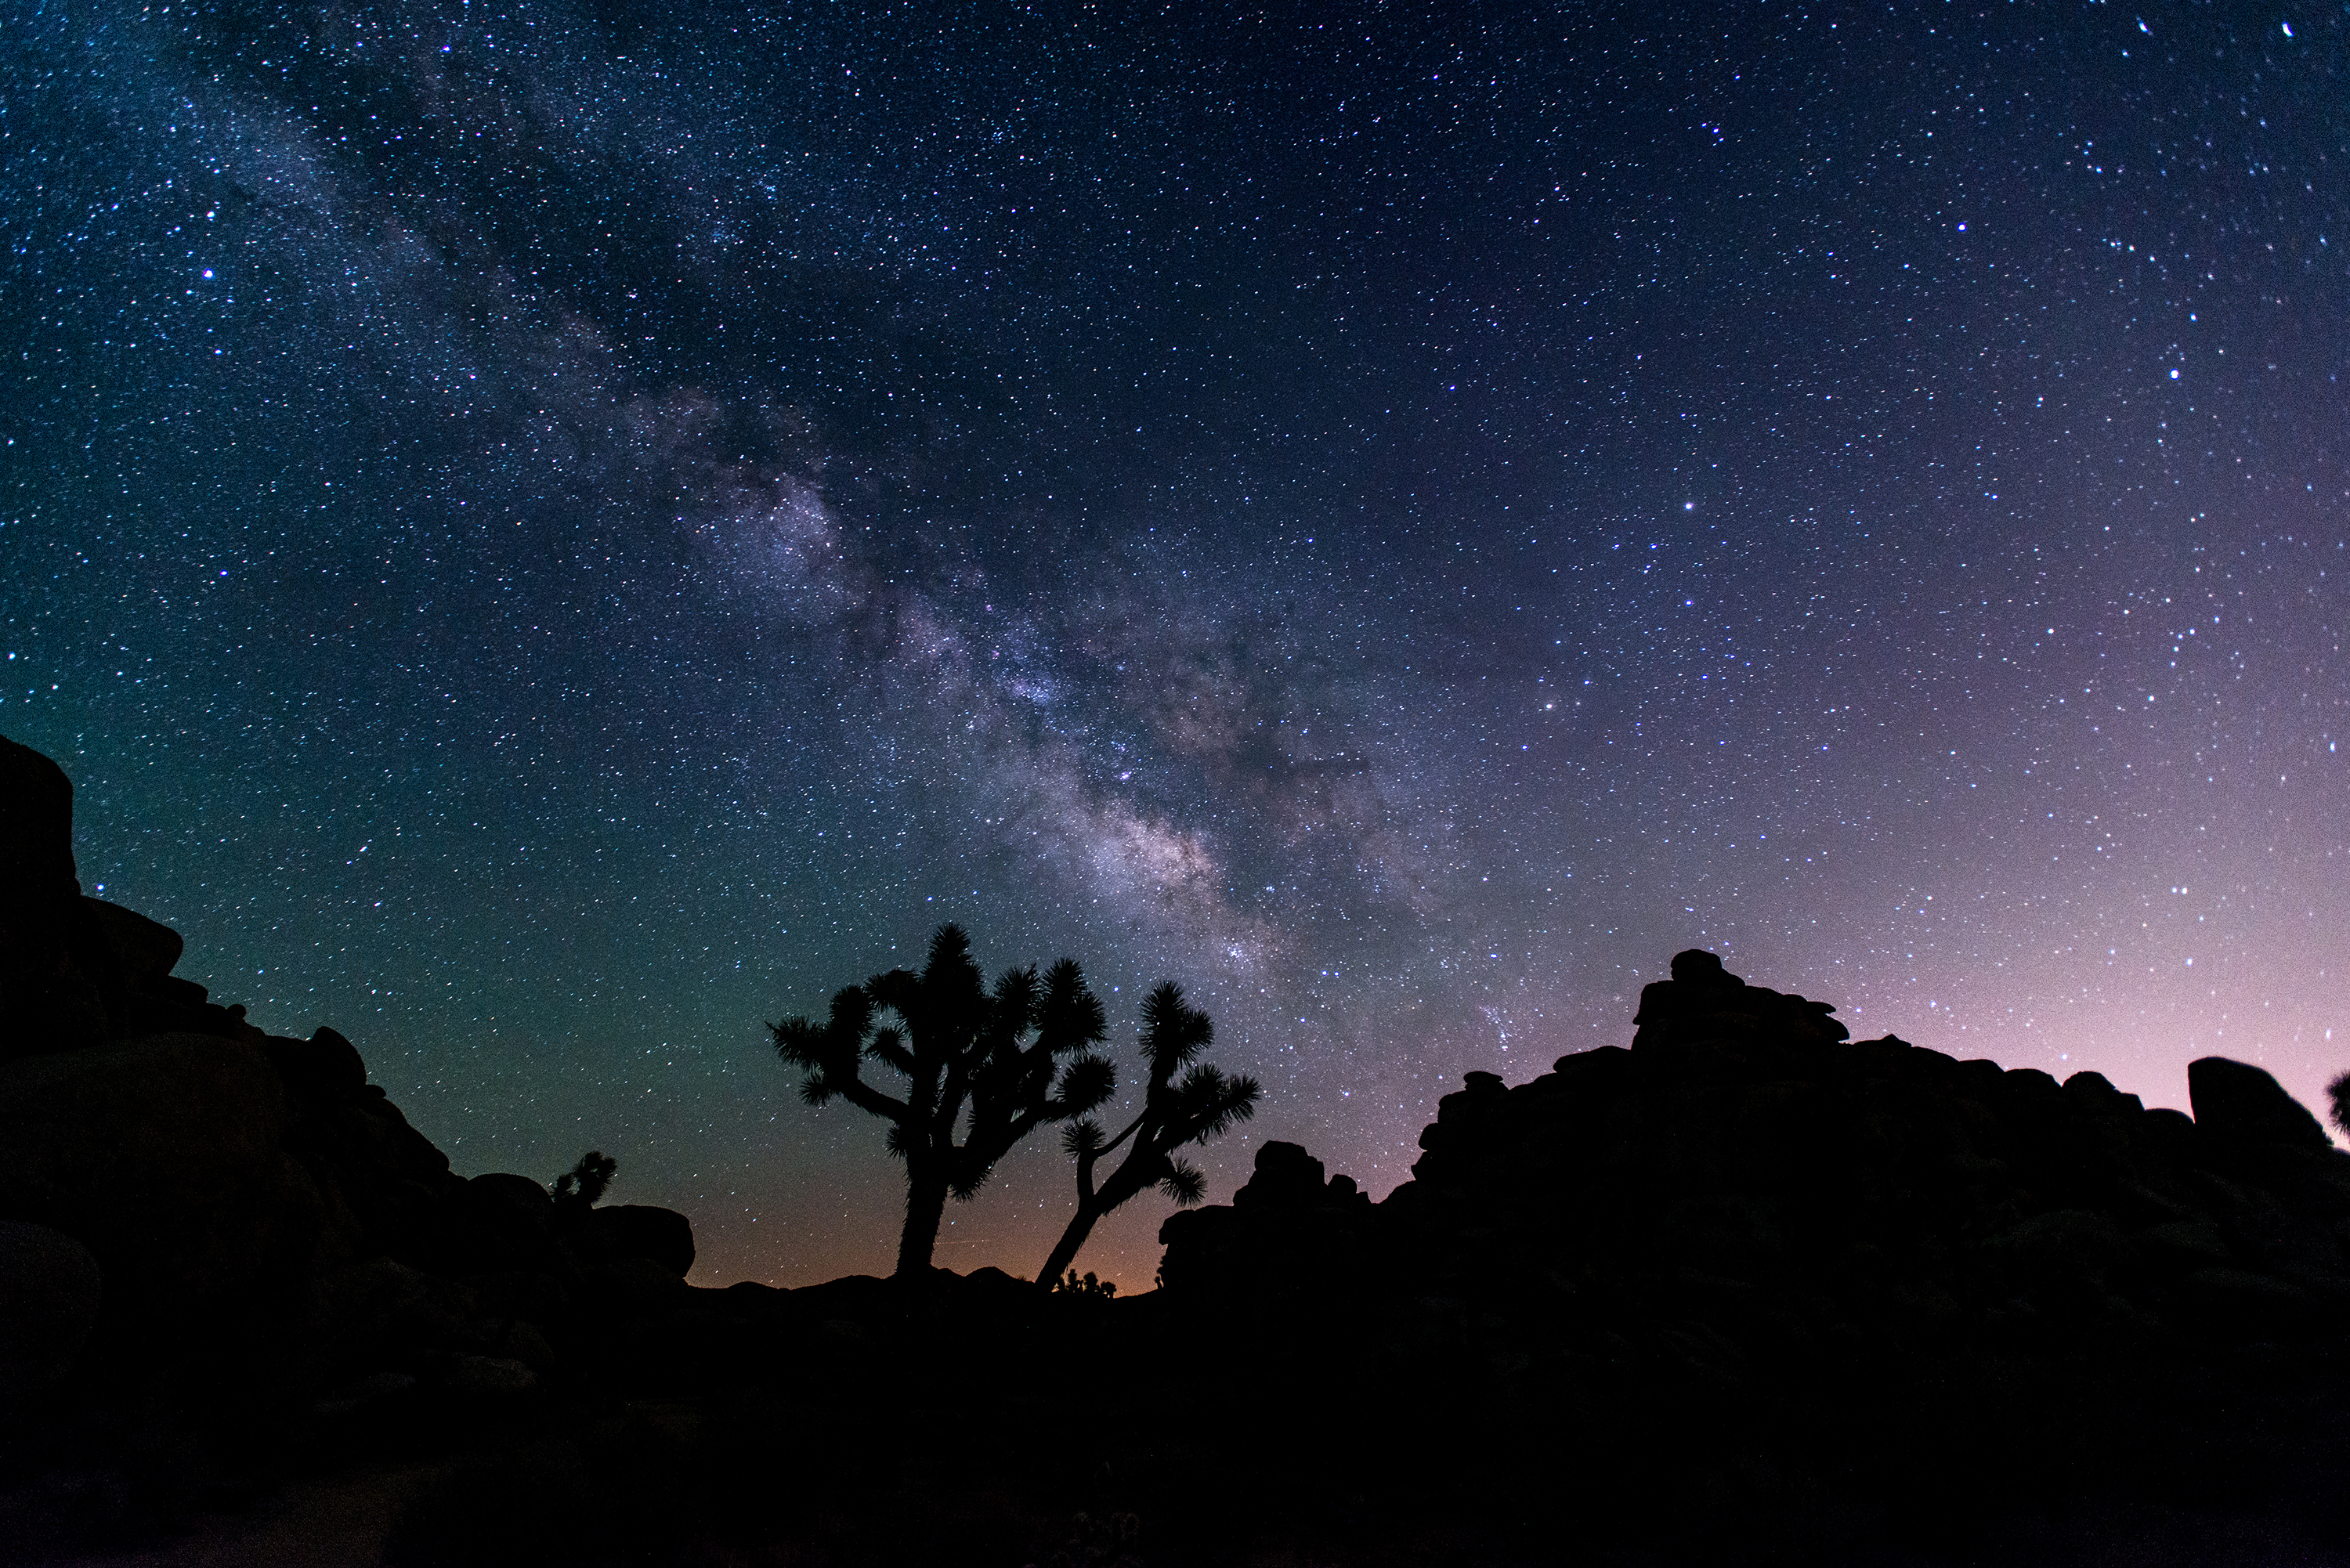 Color photo of the Joshua Tree landscape in silhouette with a brilliant night sky and Milky Way visible in the background.